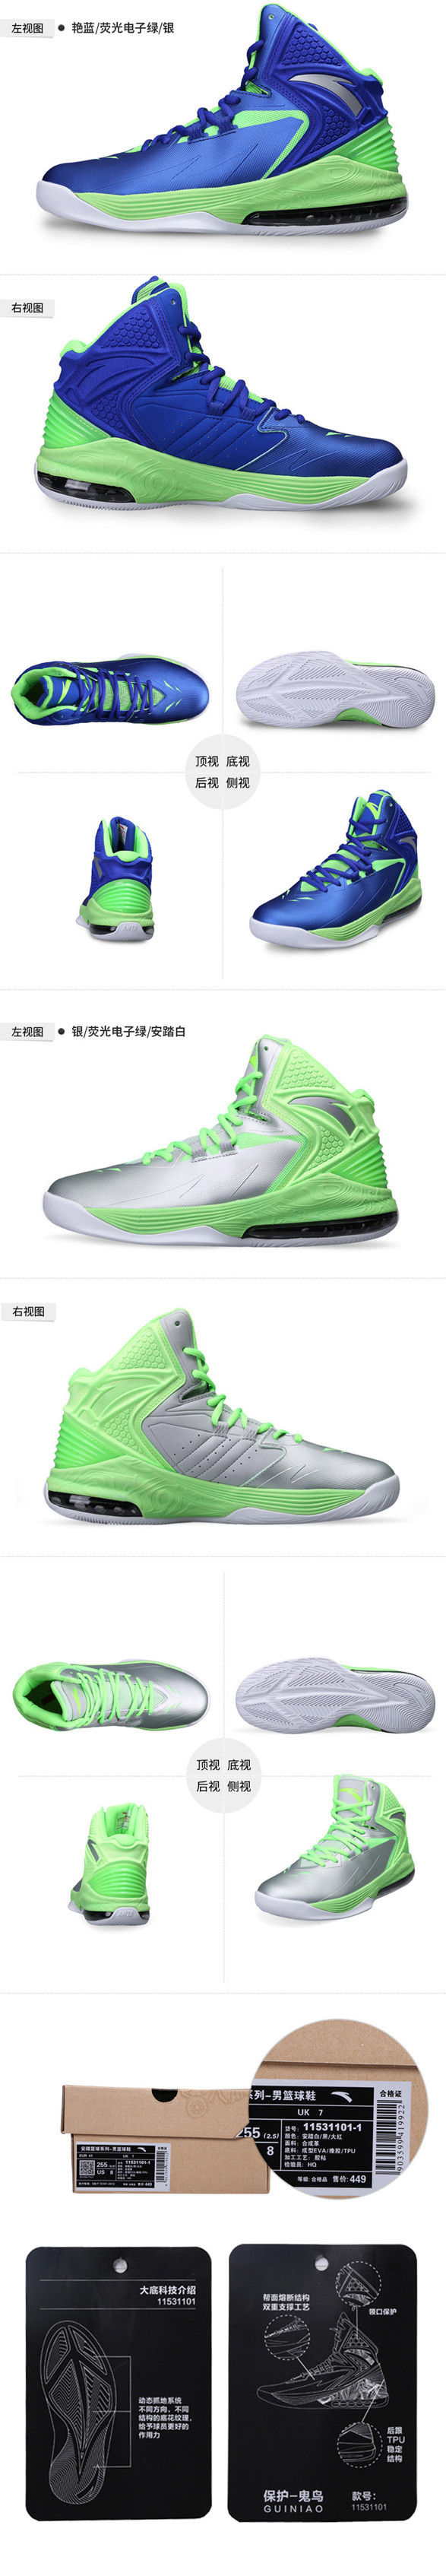 Anta NBA Ghost Birds Professional Basketball Shoes